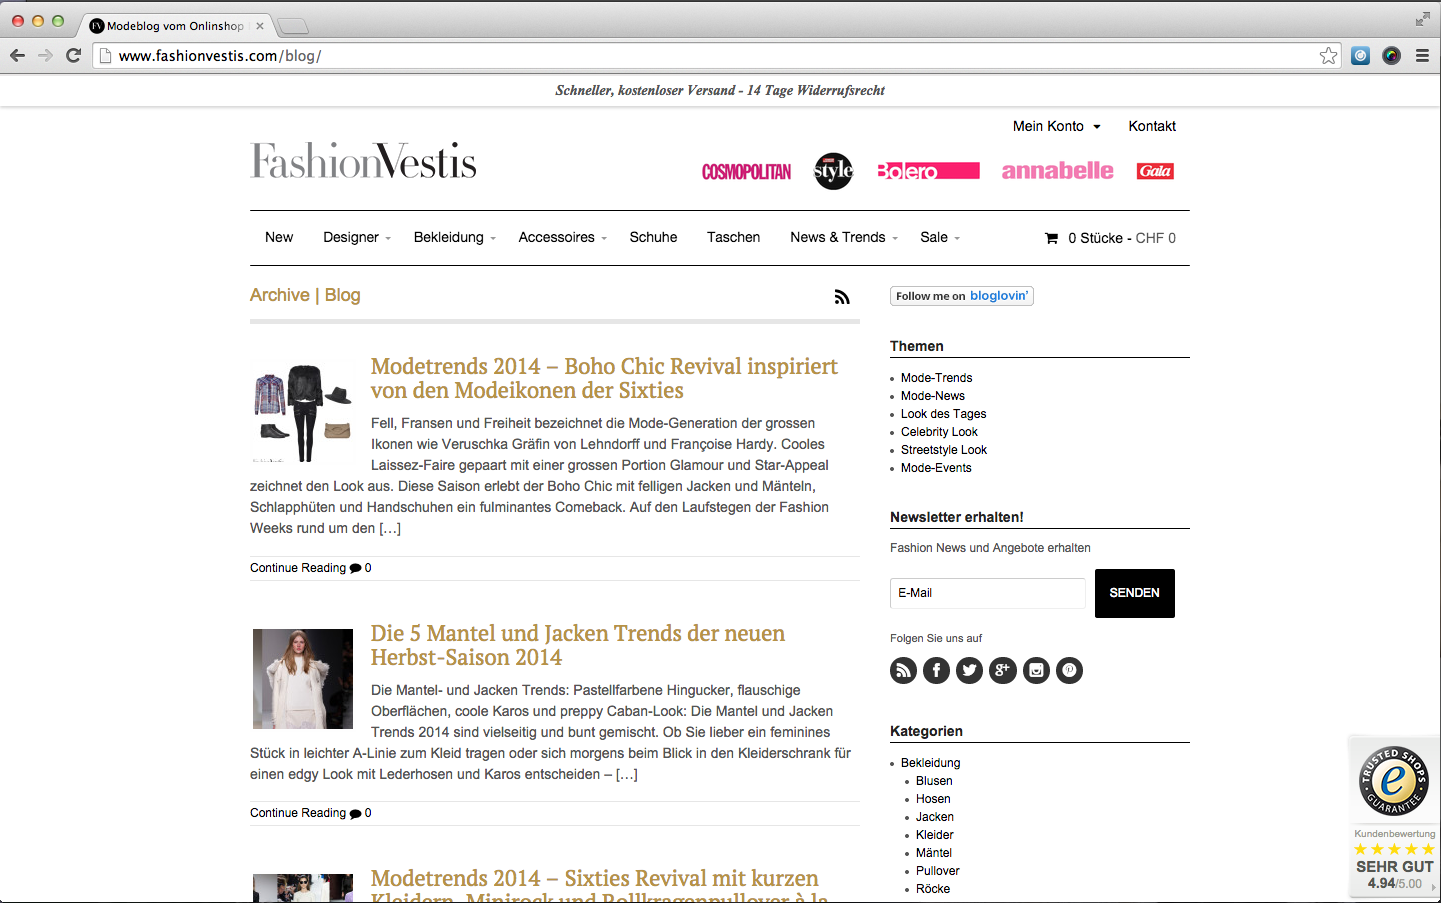 fashionvestis-com-blog